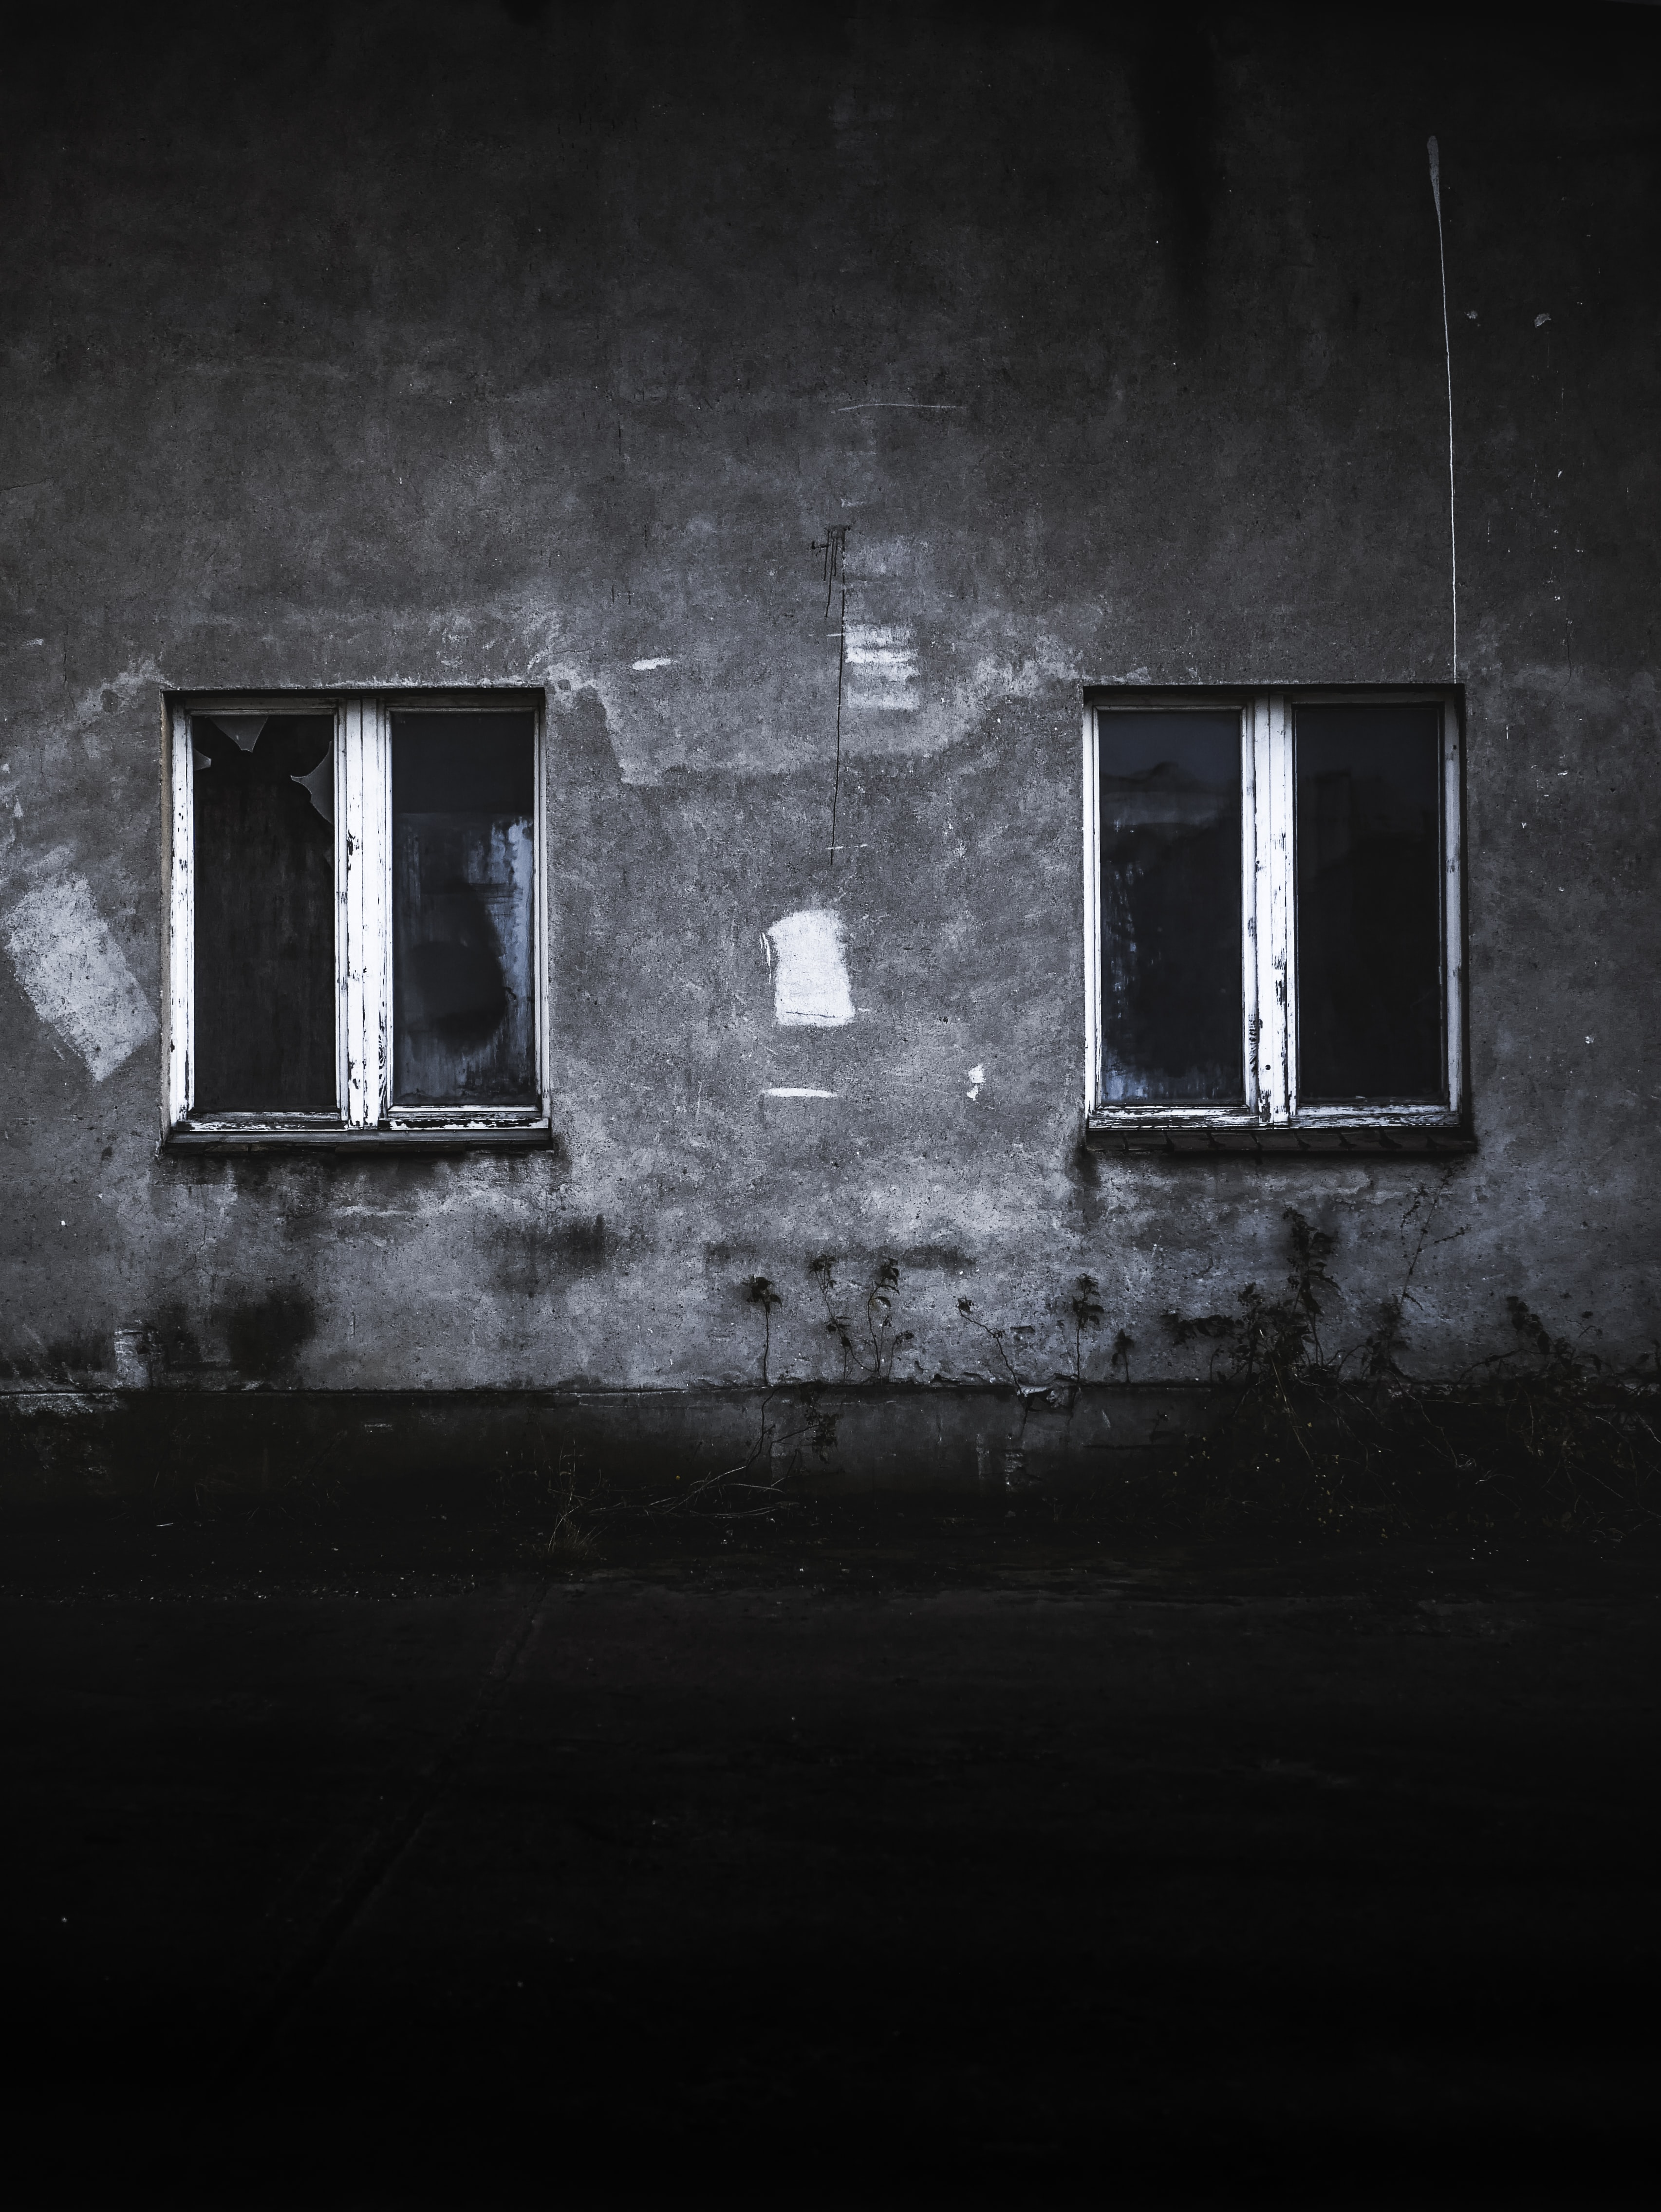 grayscale photo of concrete house with two windows